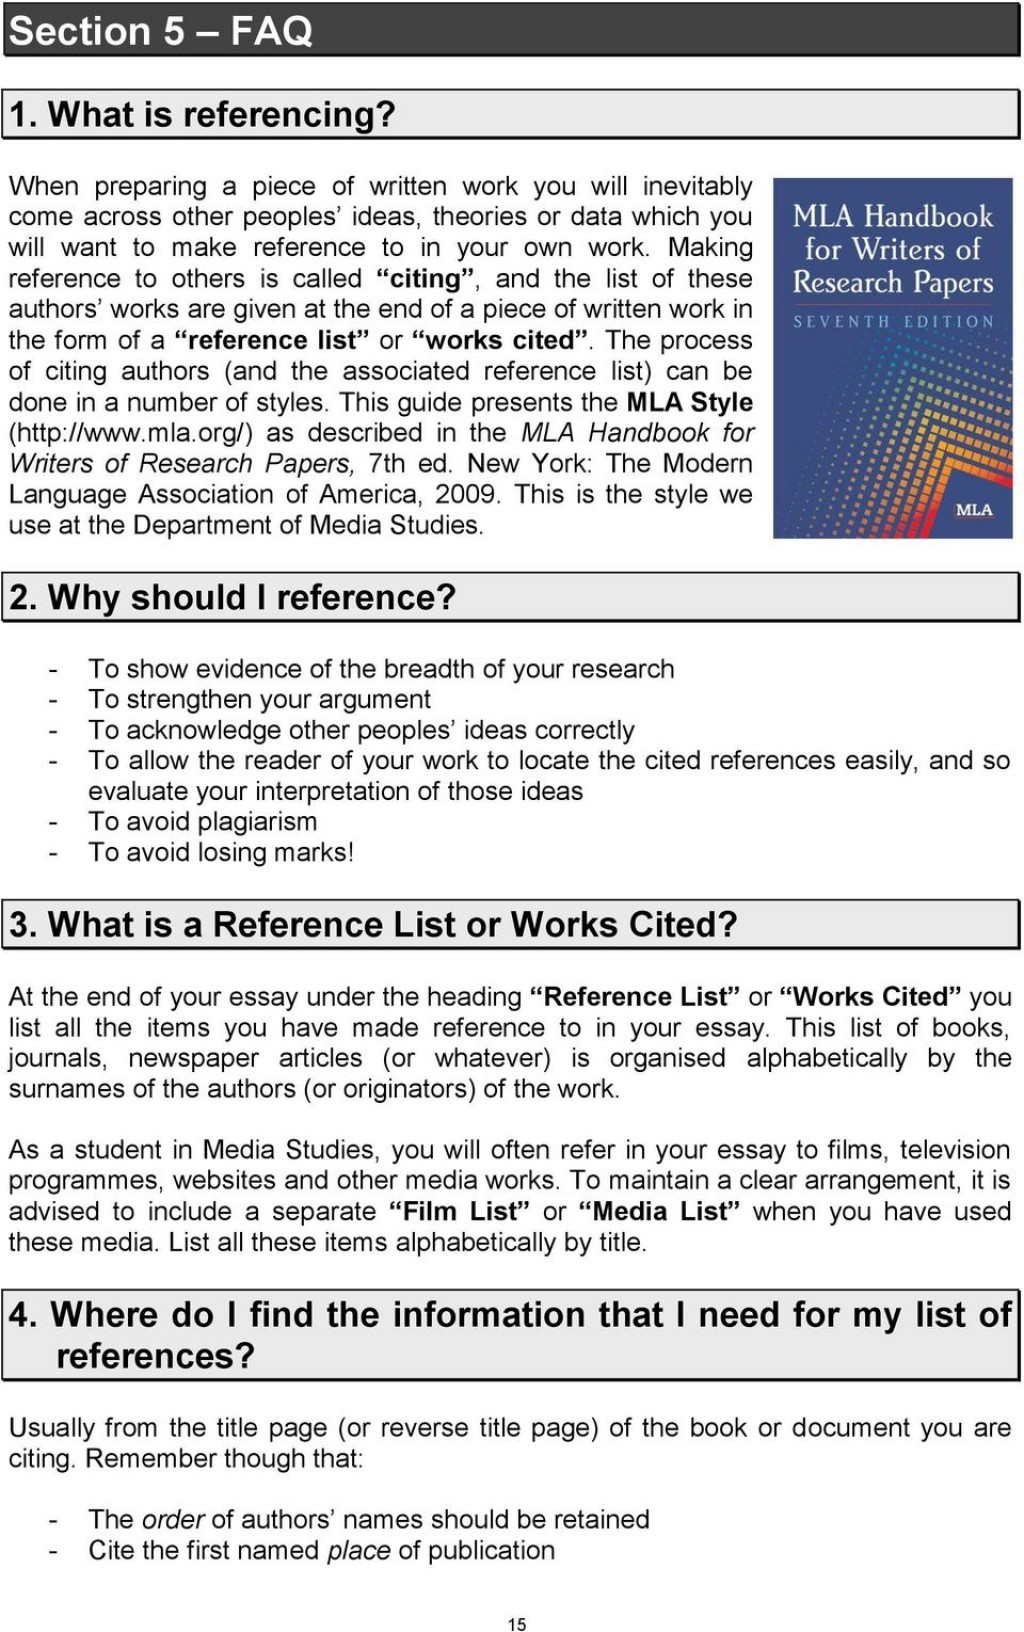 011 Essay Example Pa Referencing In Essays Apa Style Sample Examples Of Writing Citations And Top Prompt Review Interview Questions Large